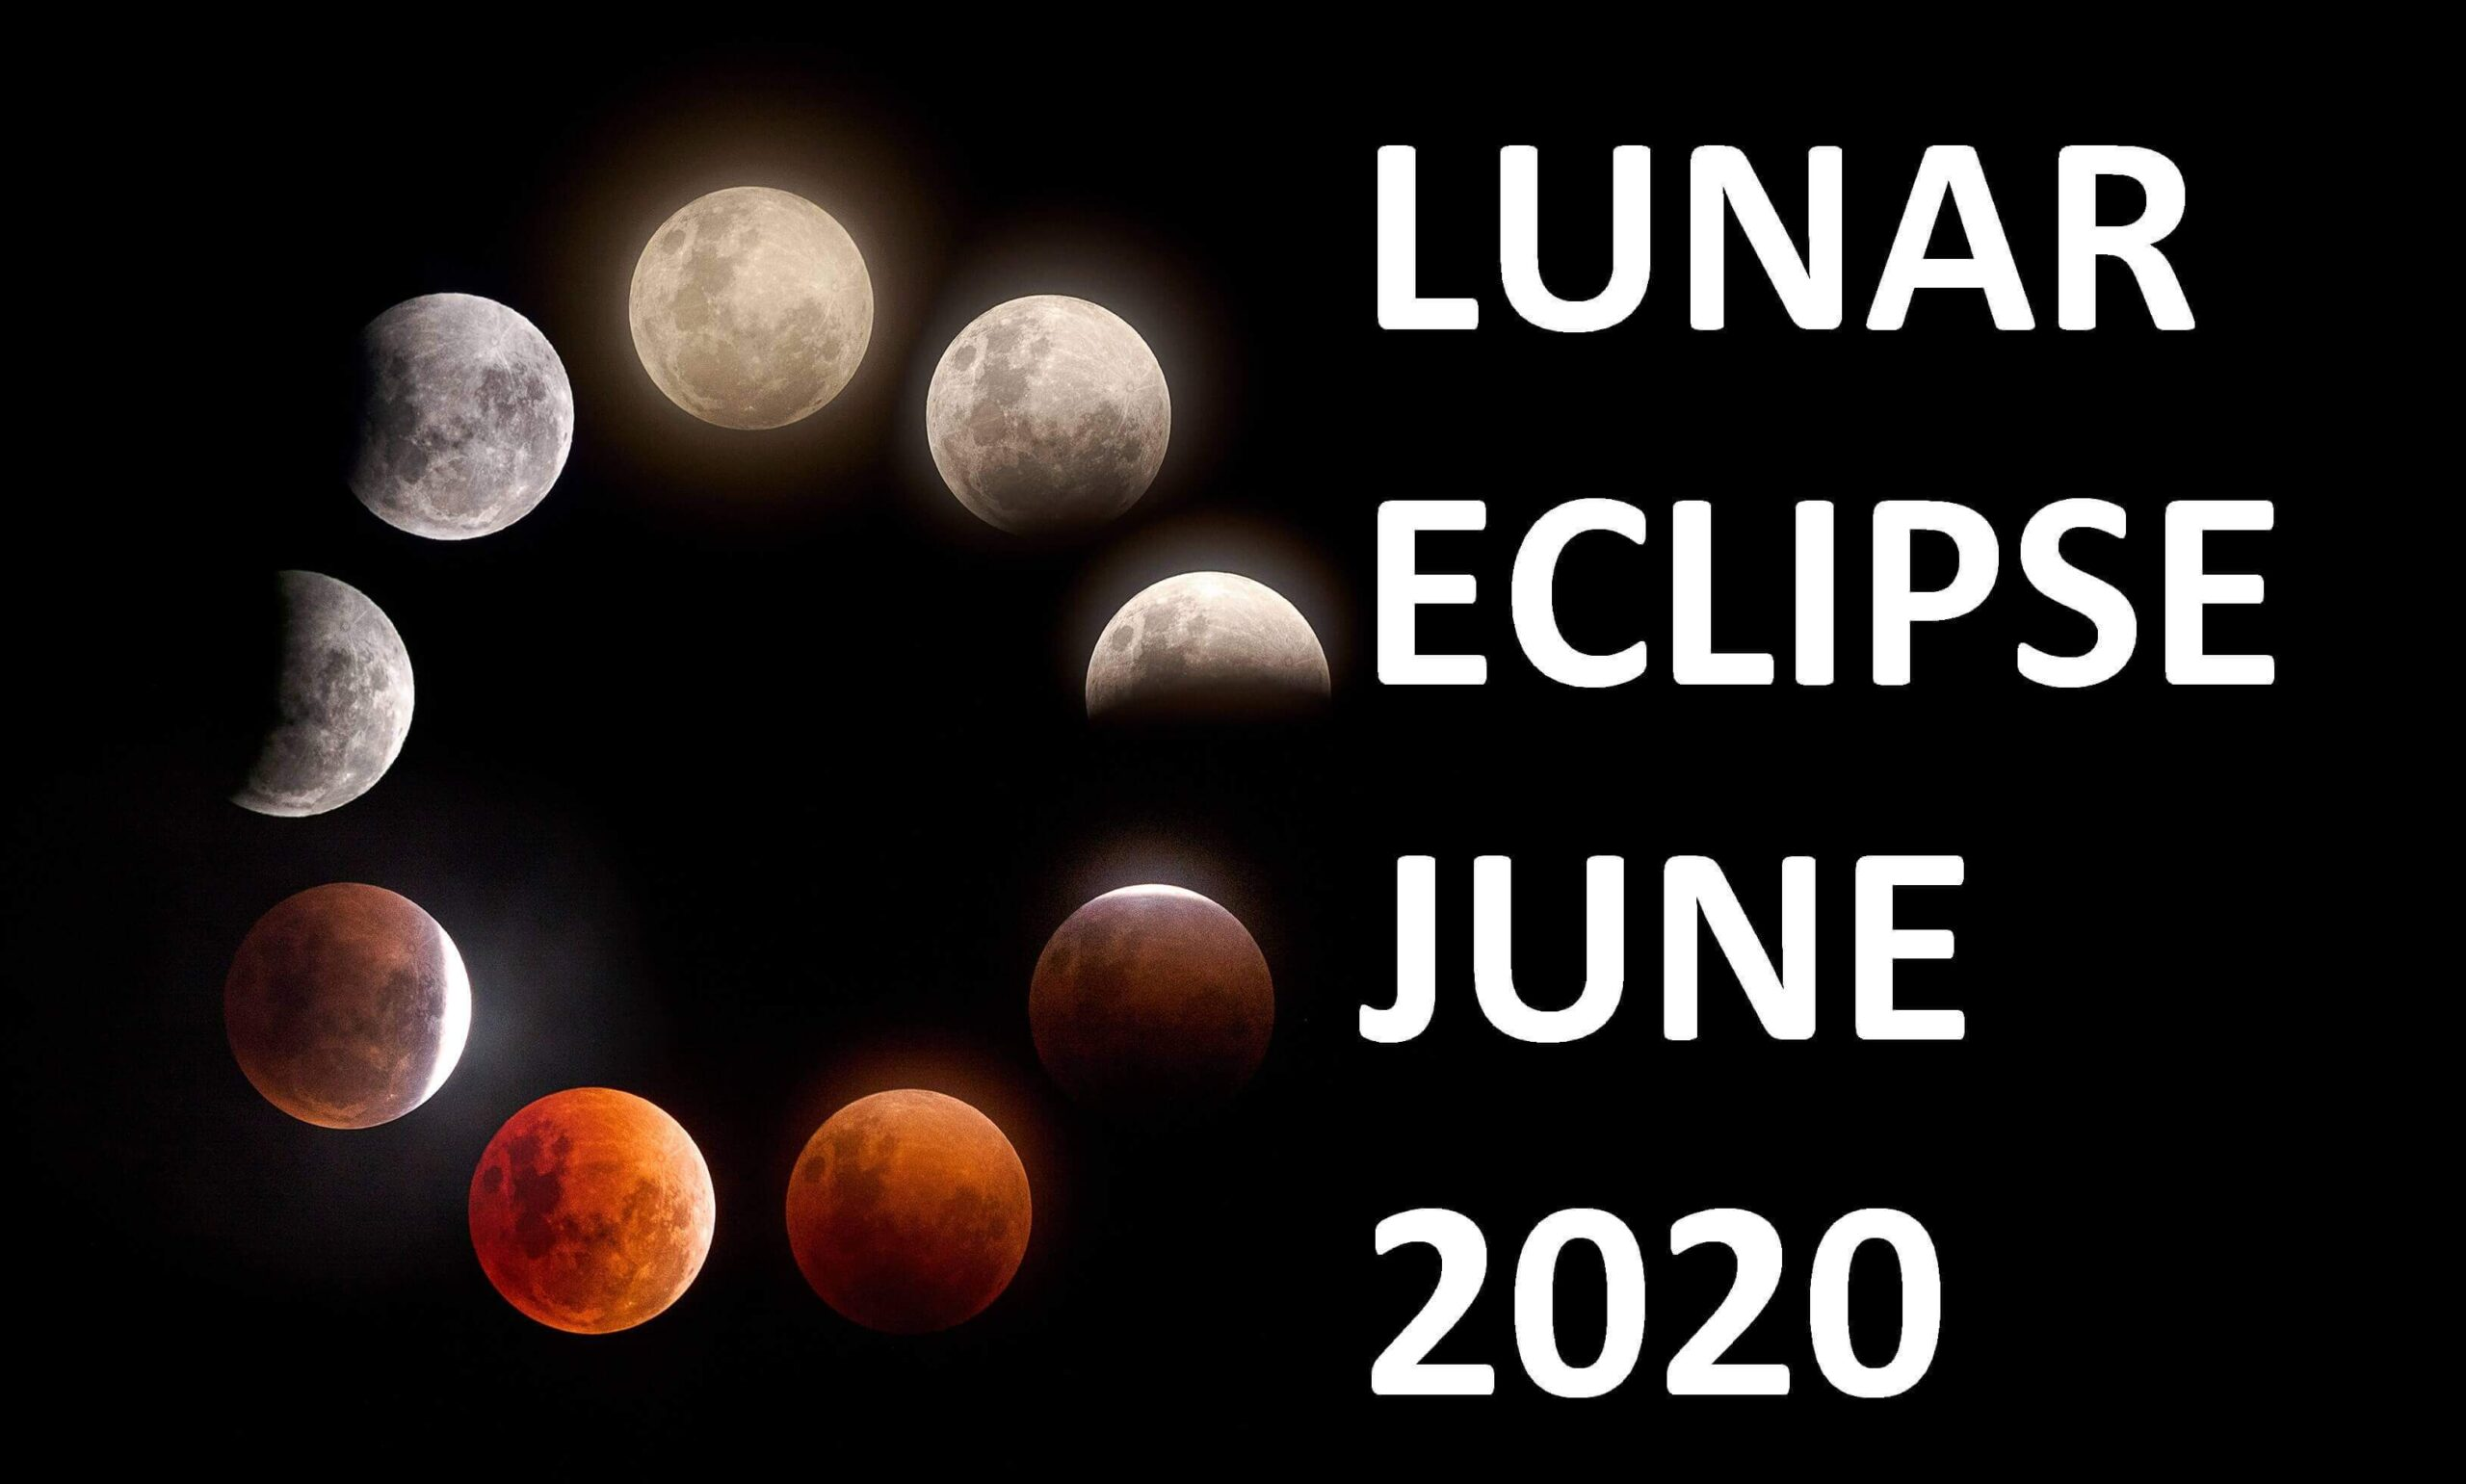 lunar eclipse june 2020 dates and time in india